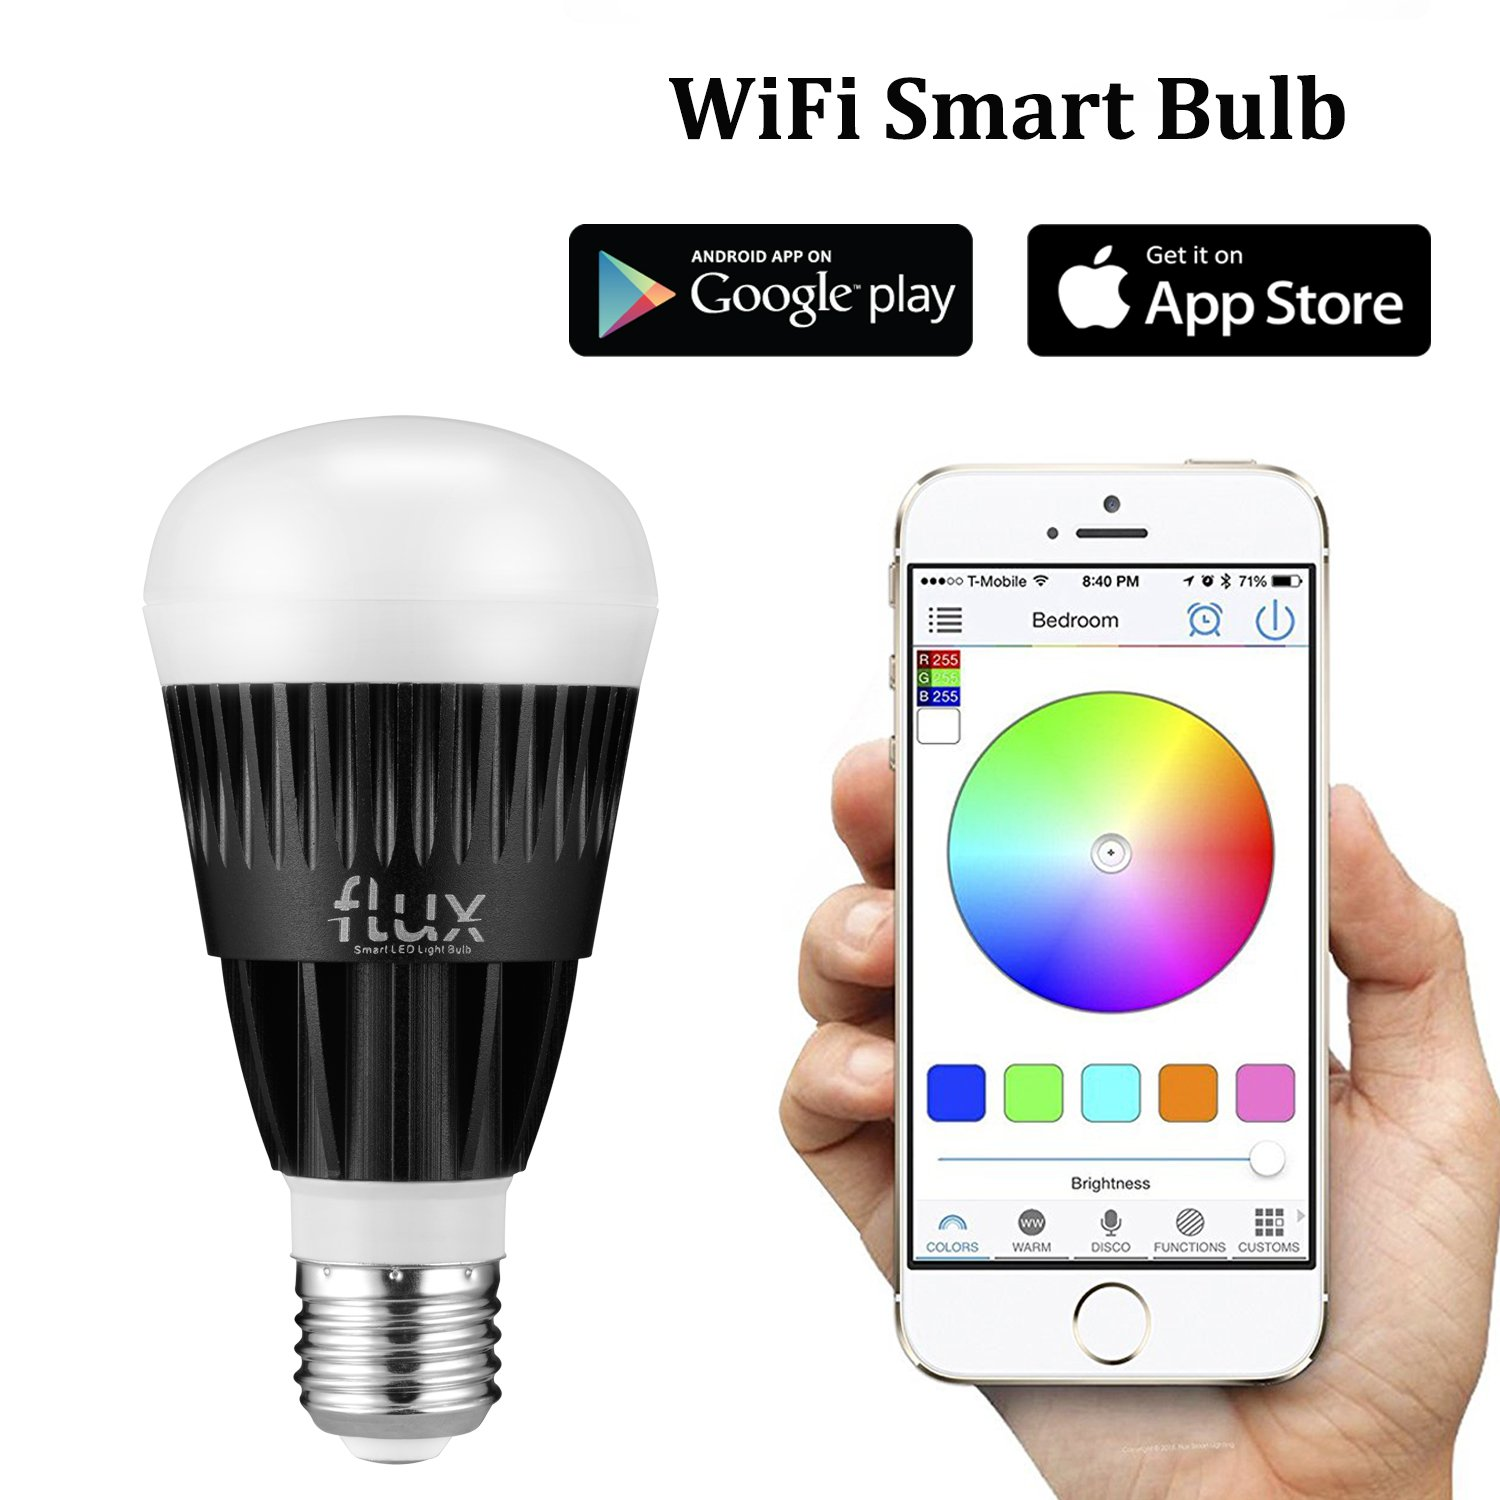 Flux WiFi Smart LED Light Bulb - Compatible with Alexa, Google Home  Assistant & IFTTT - Smartphone Controlled Color Changing Lights - Sunrise  Wake Up Light ...